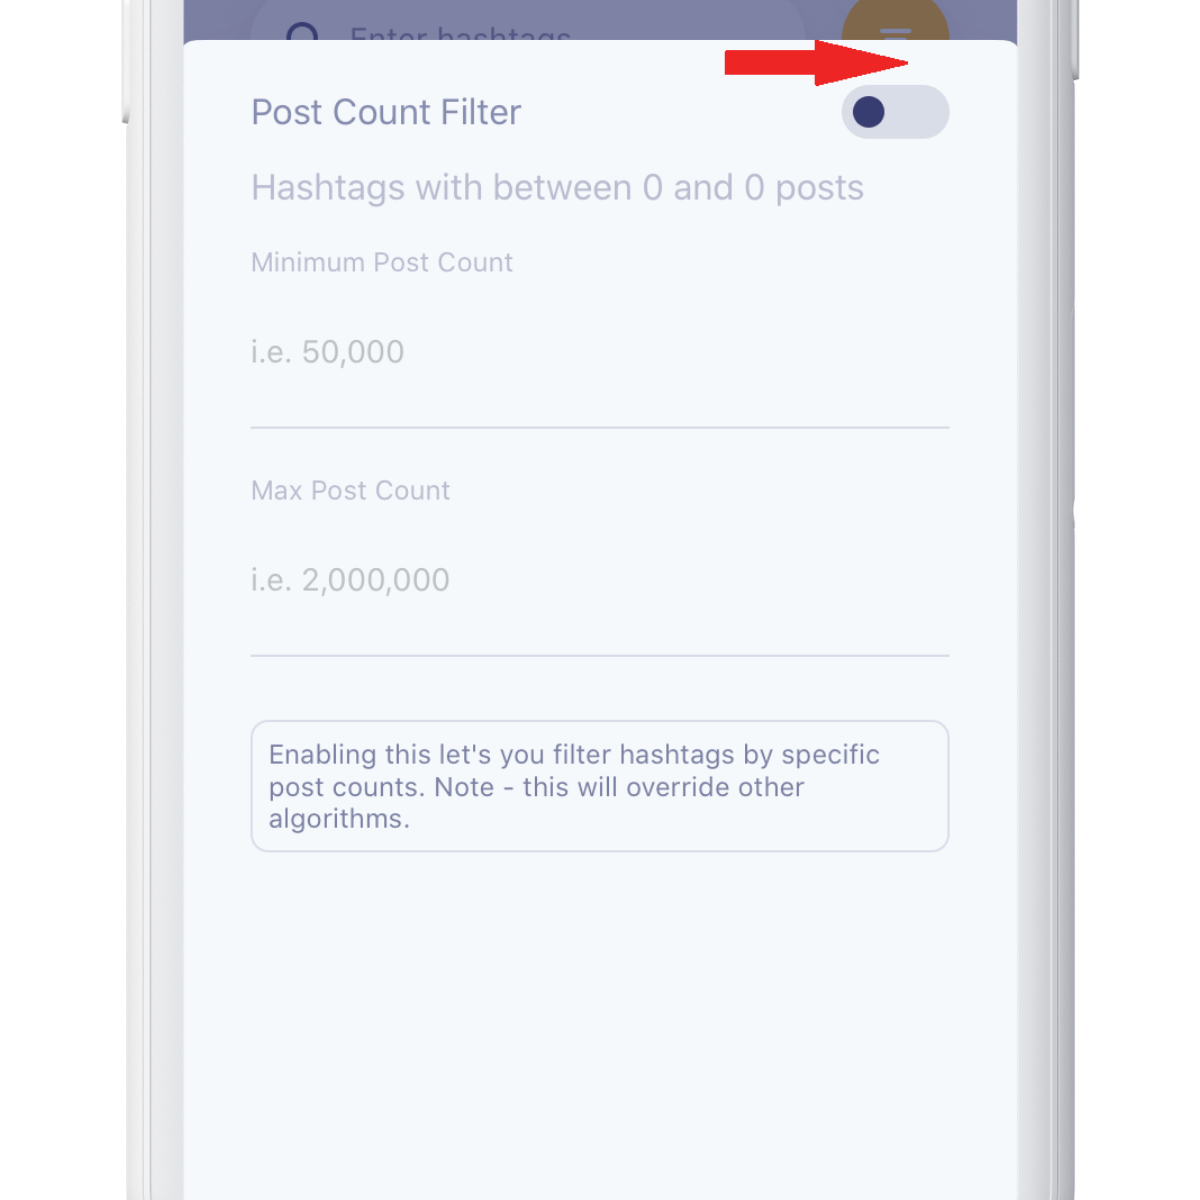 activate post count filter